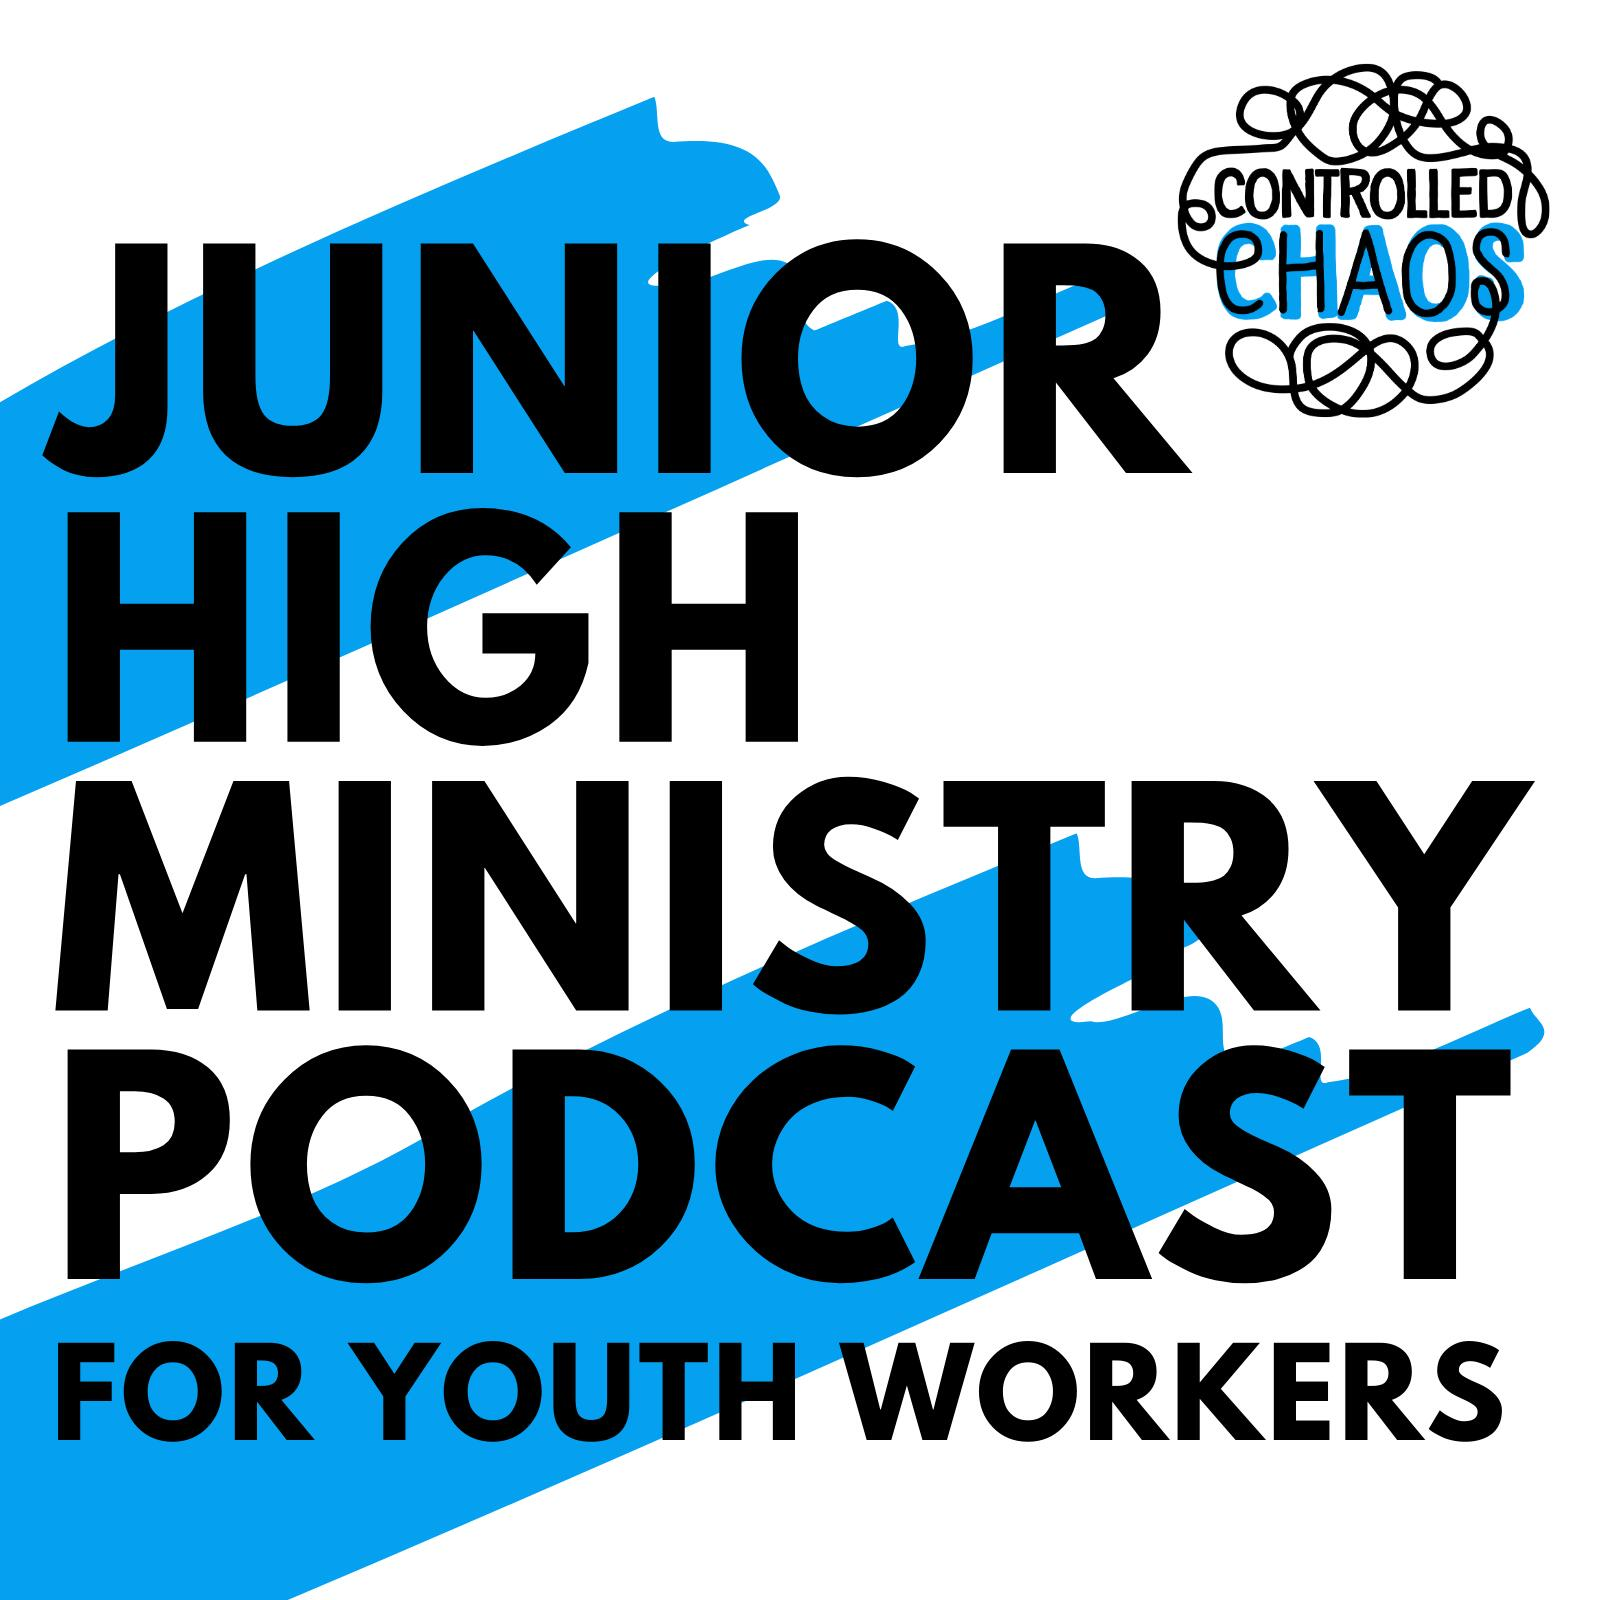 Controlled Chaos Podcast Junior High Middle School Youth Ministry Justin Herman